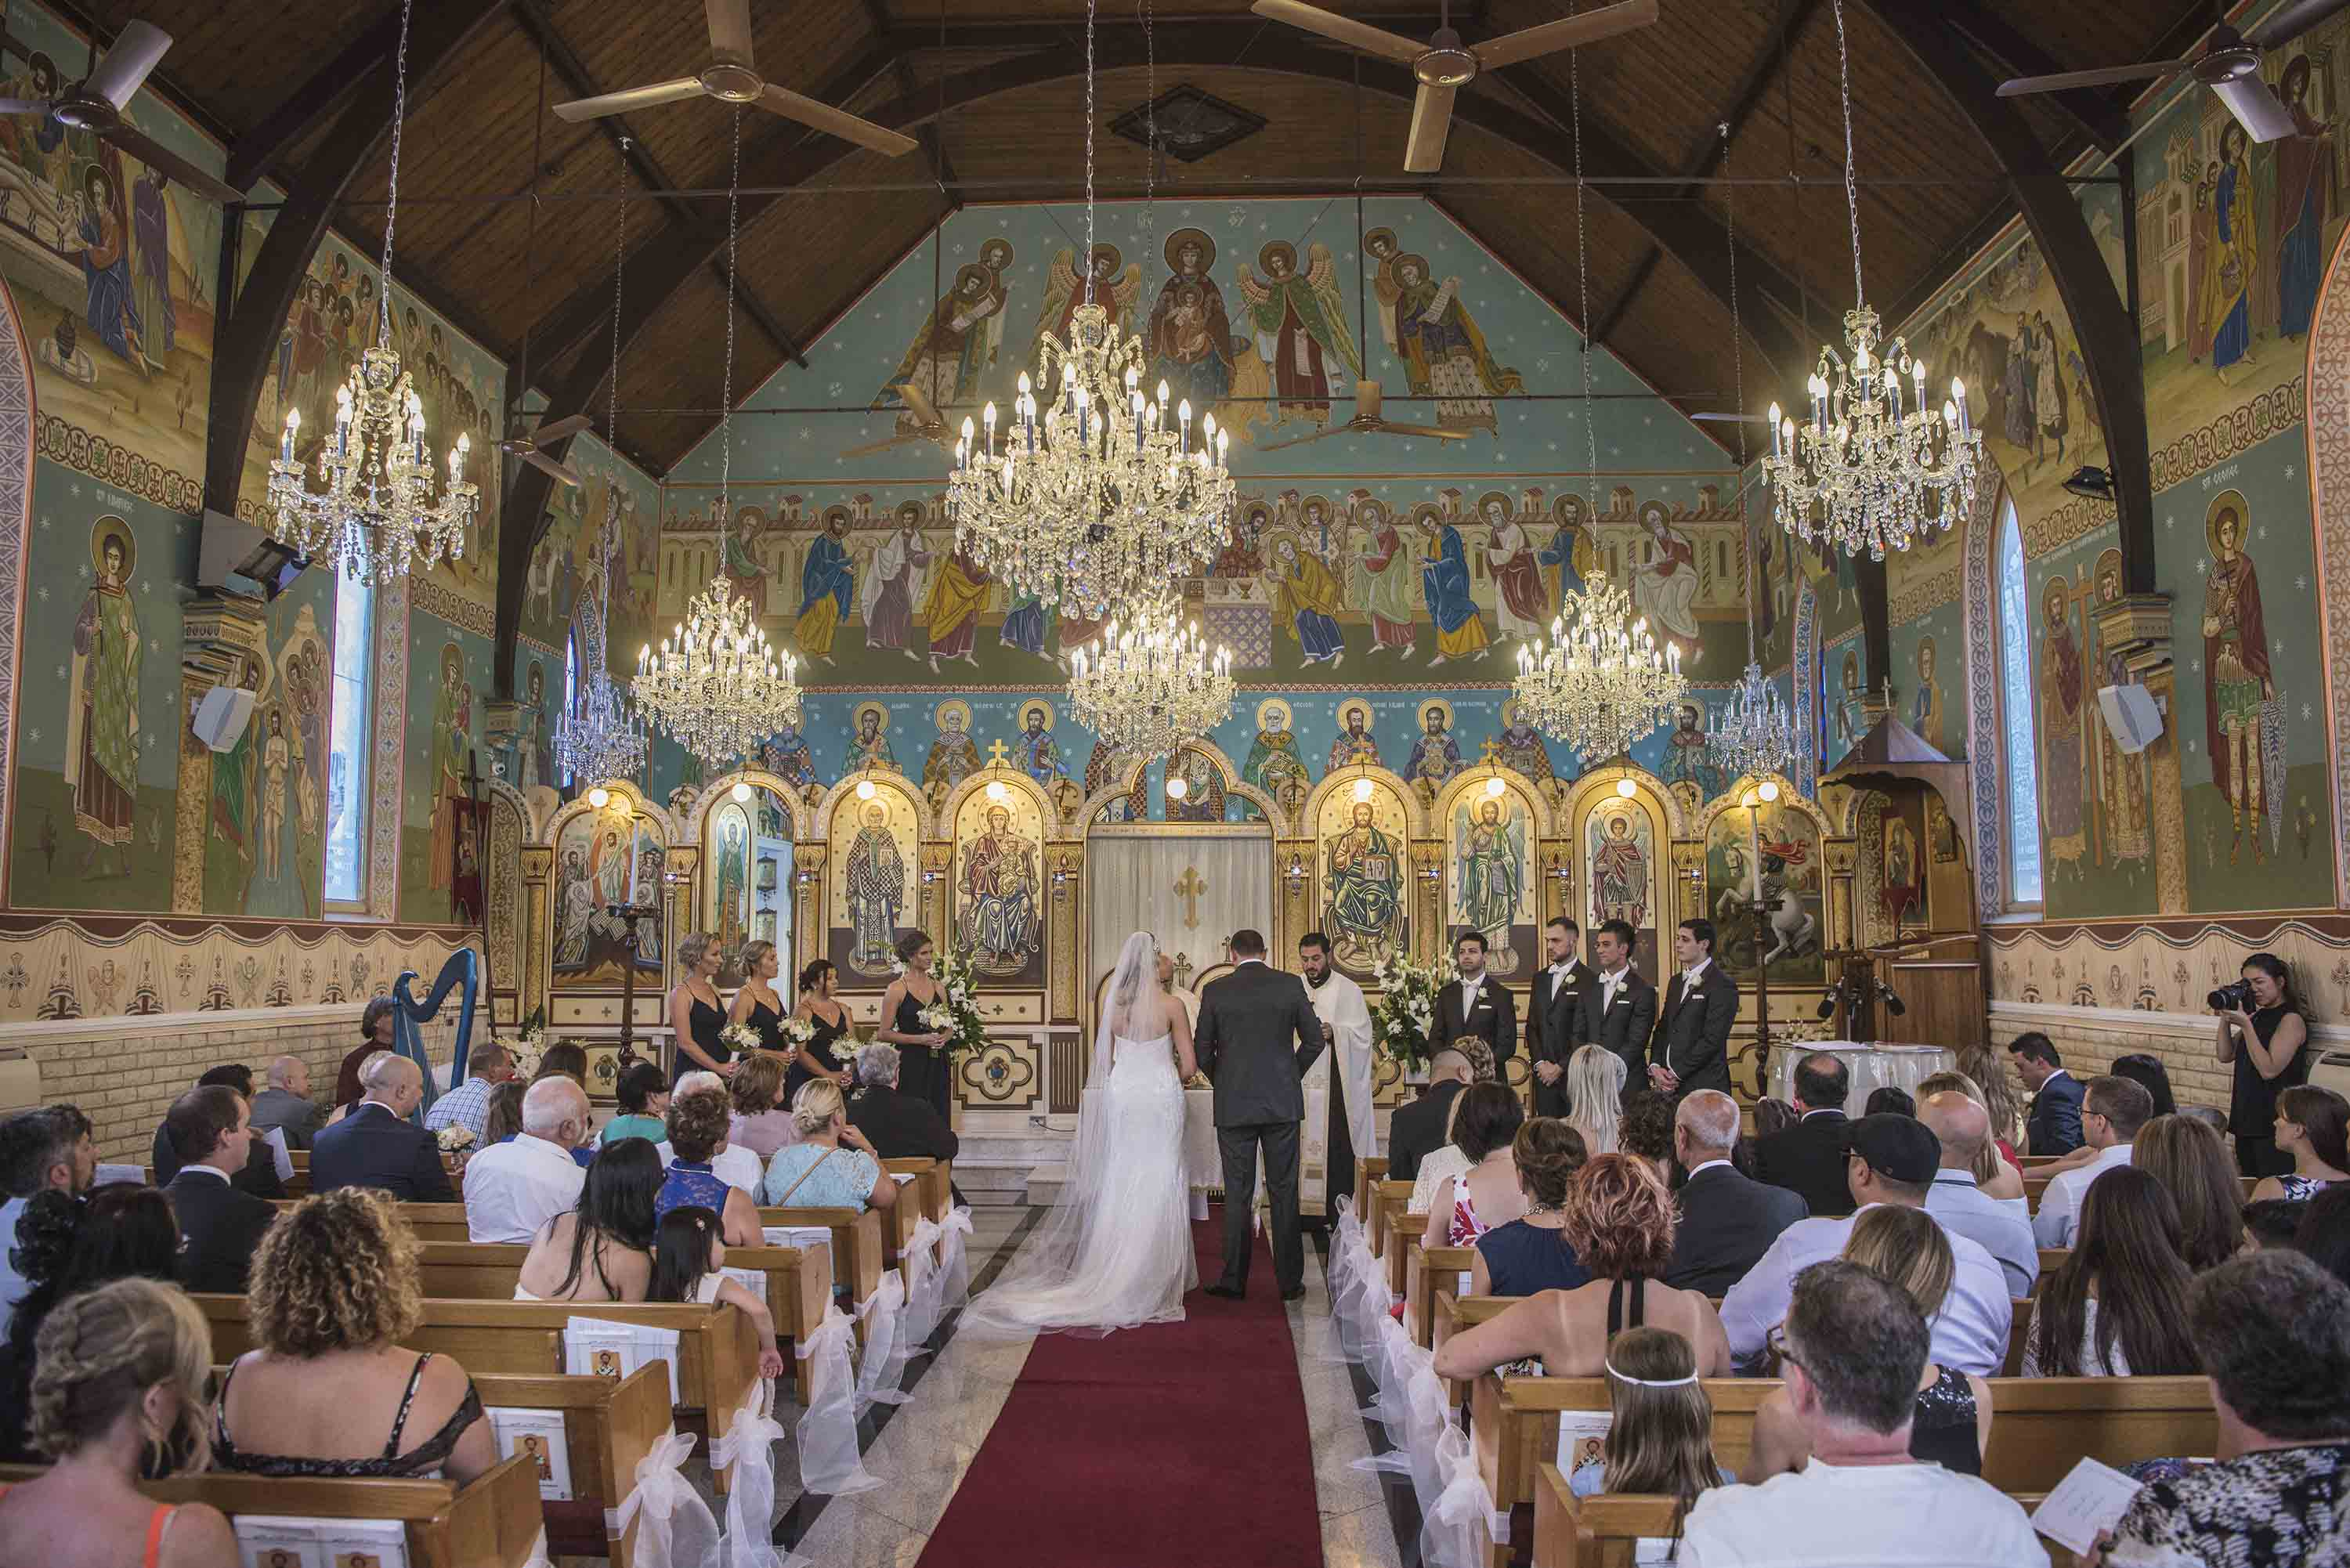 <a href=&quot;https://www.treephotovideo.net.au/orthodox-wedding-photography/&quot;>Charles & Karolina</a>